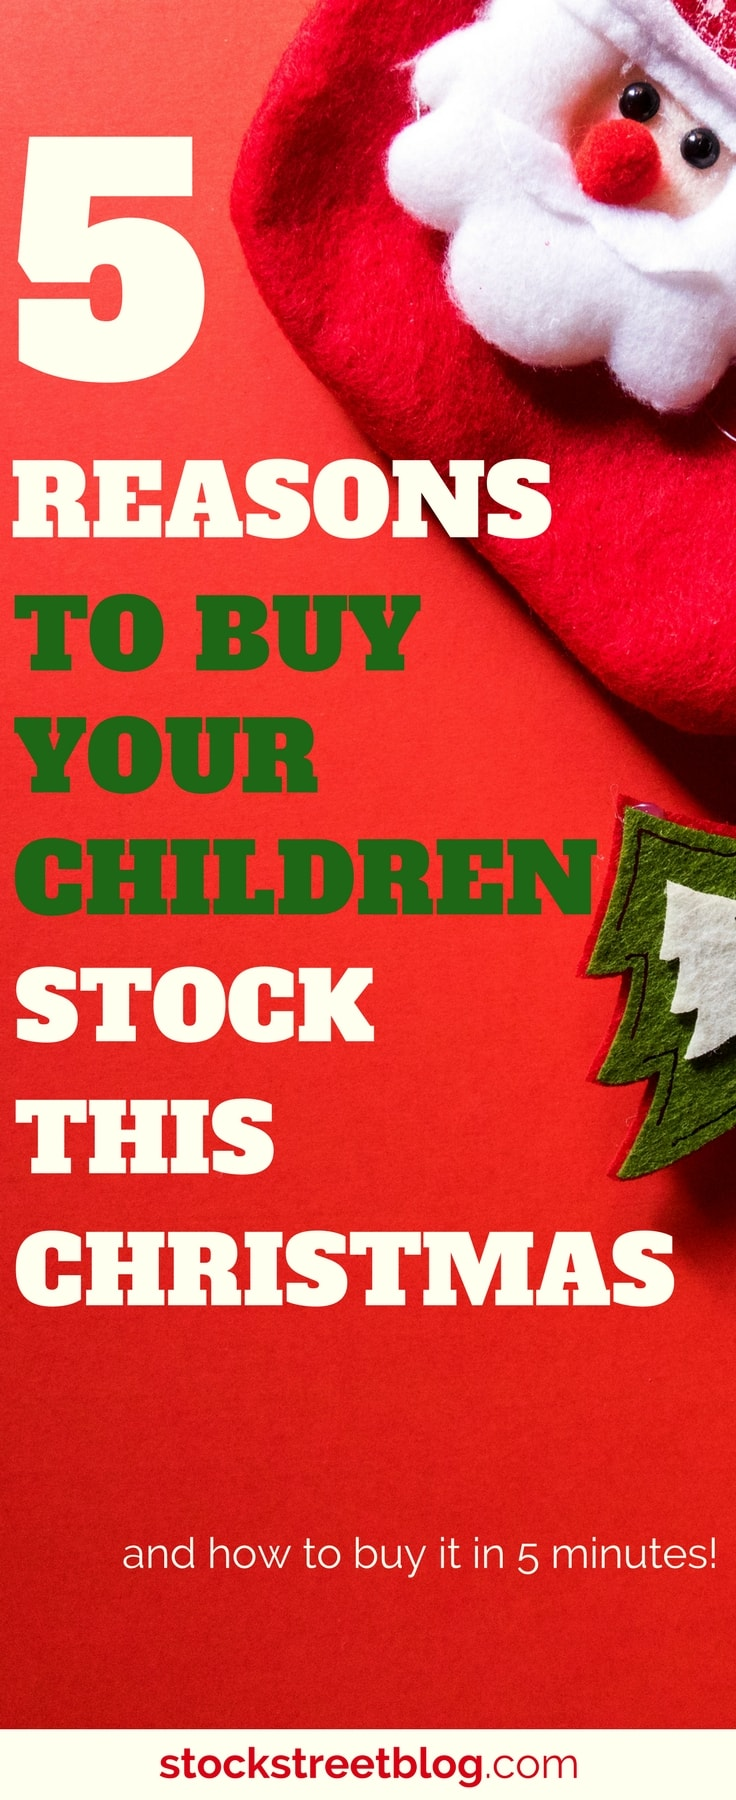 Good Christmas Stocks To Invest In #1: Stock-as-a-Christmas-gift.jpg?resize=736%2C1800